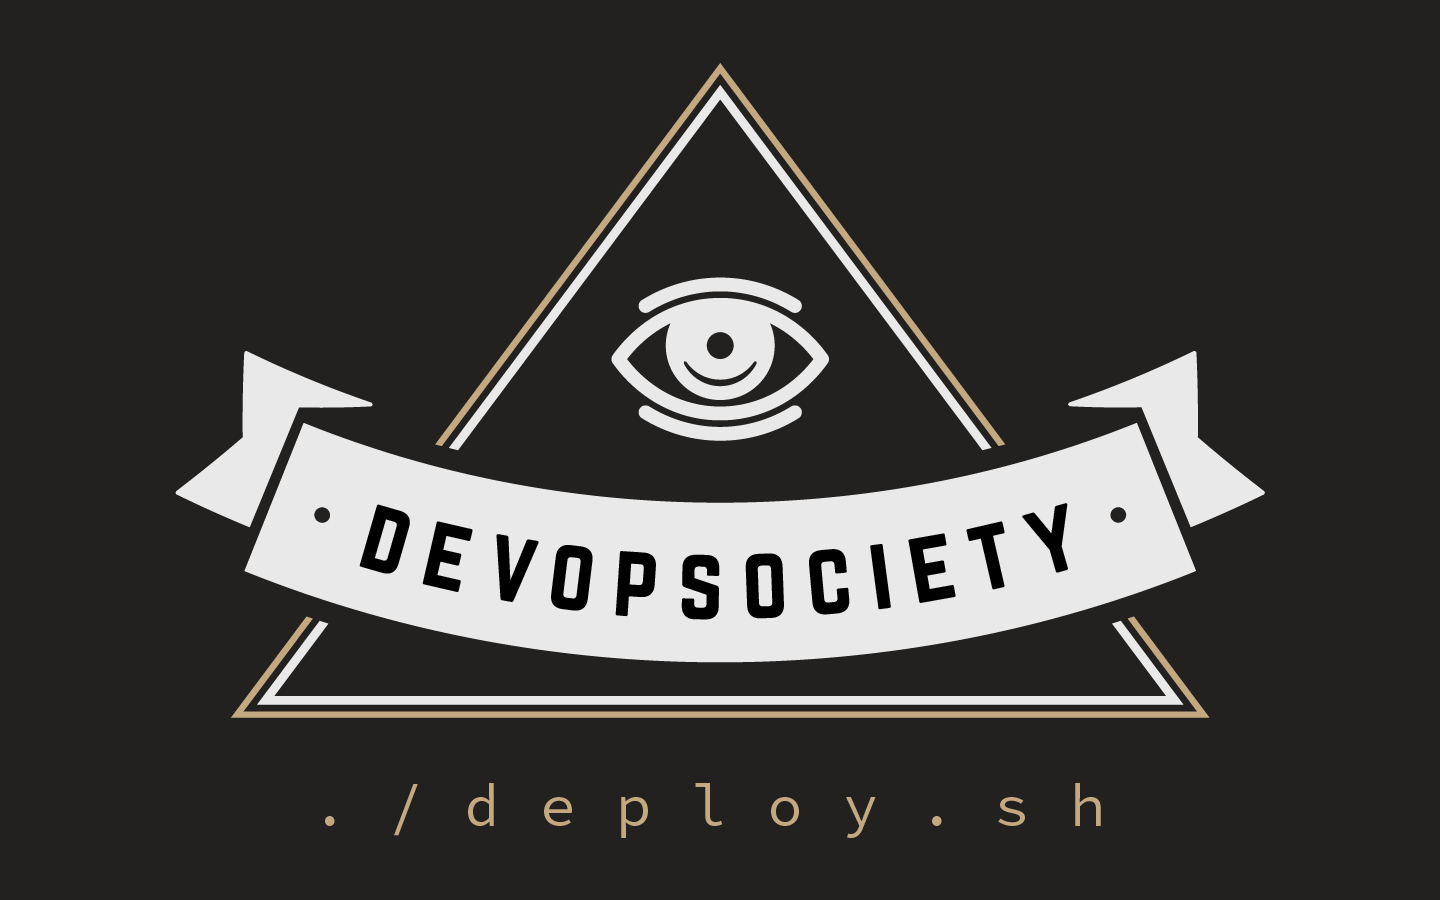 devops society logo